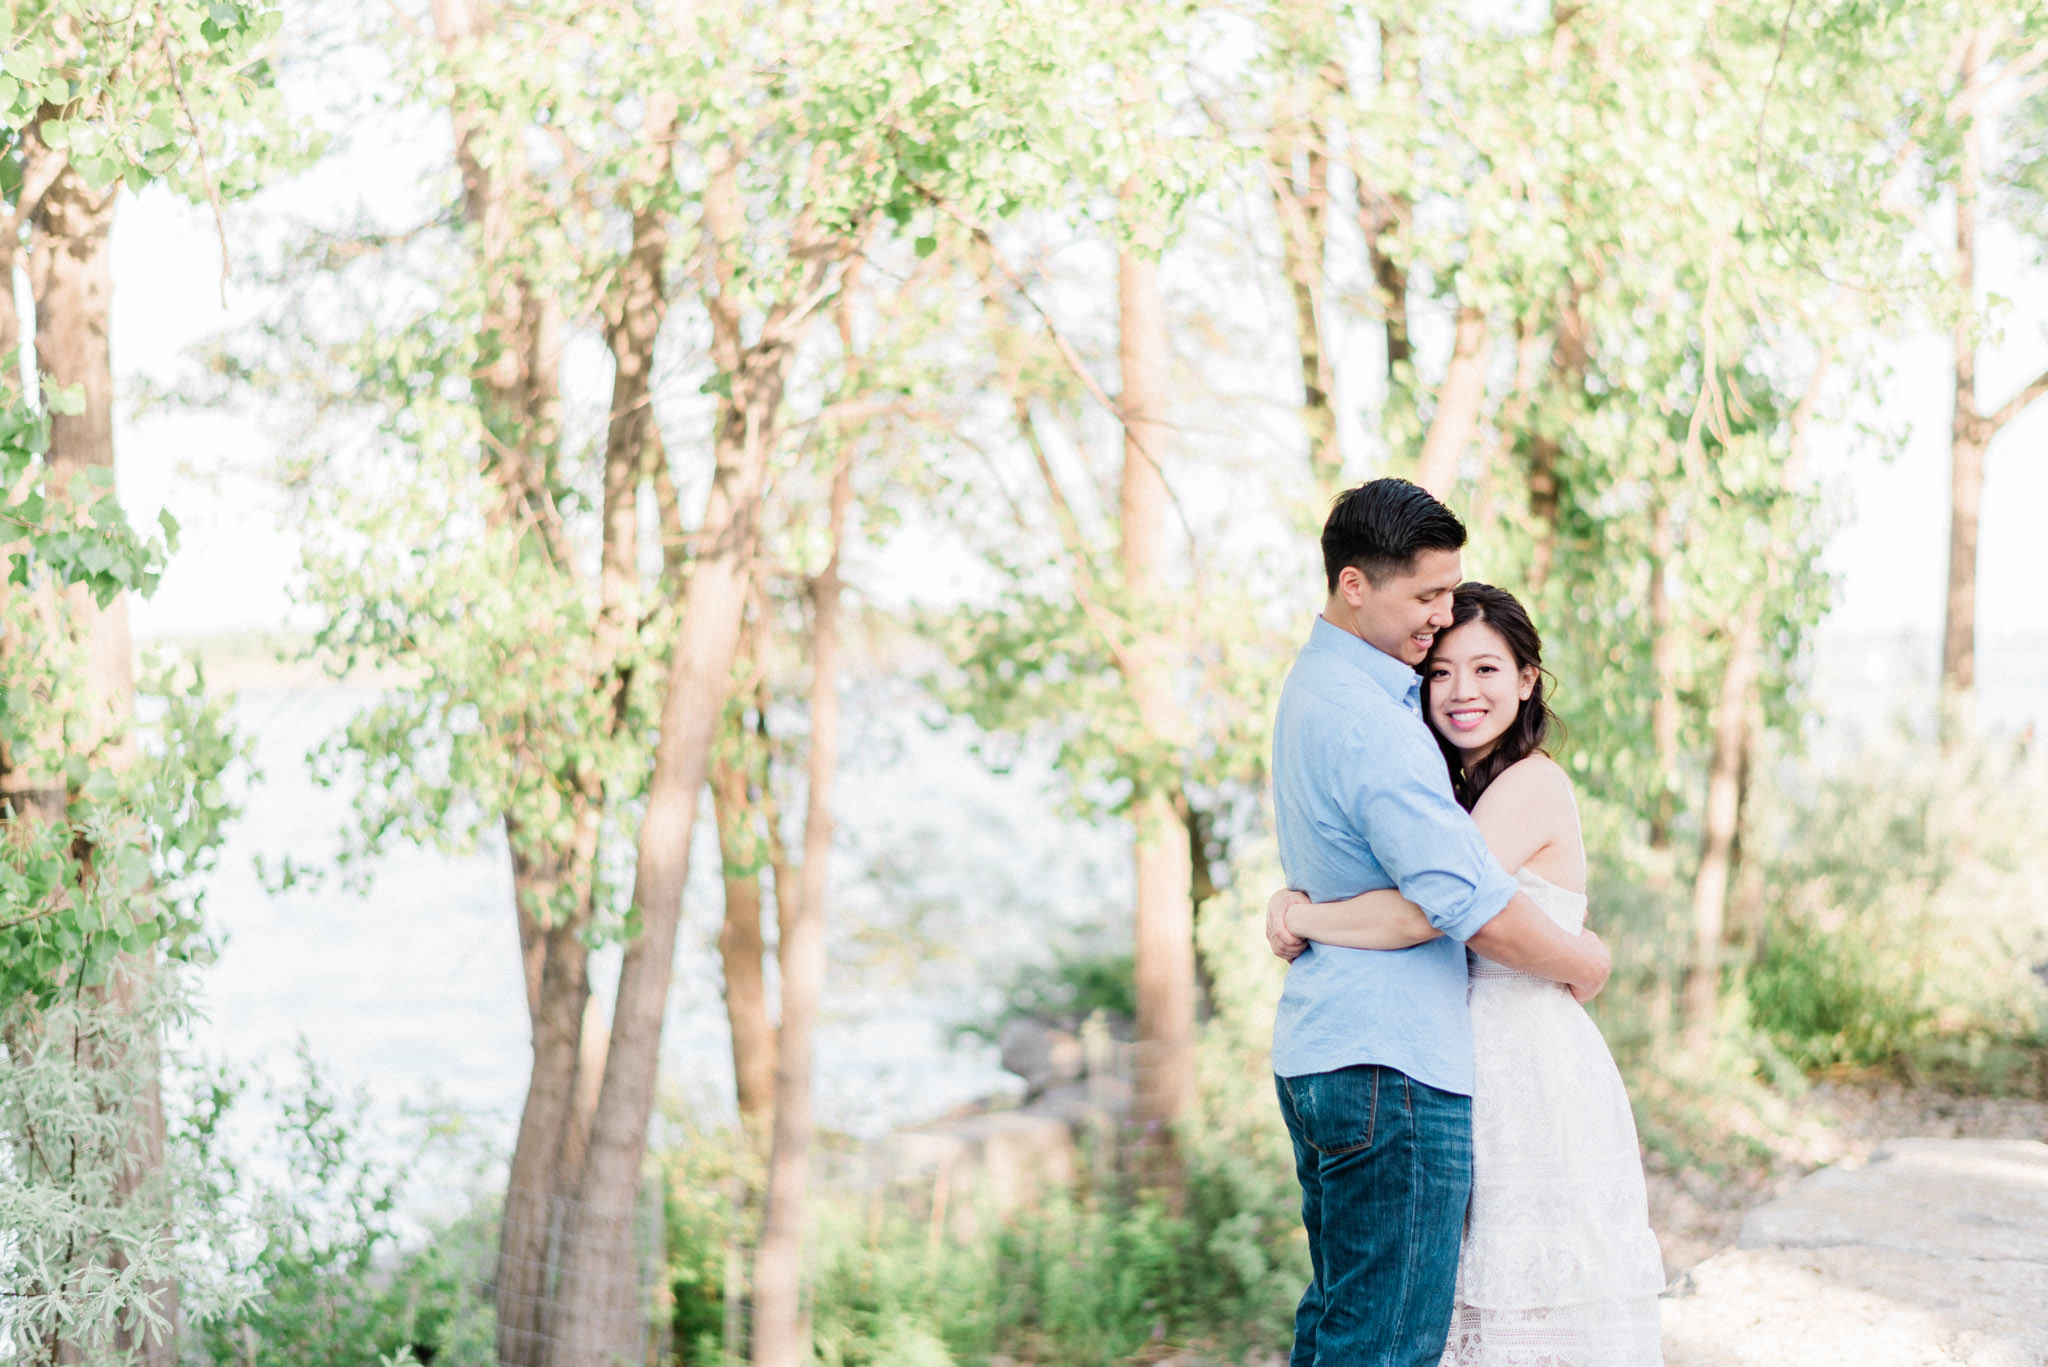 Couple hugging during an engagement session at Trillium Park in Toronto